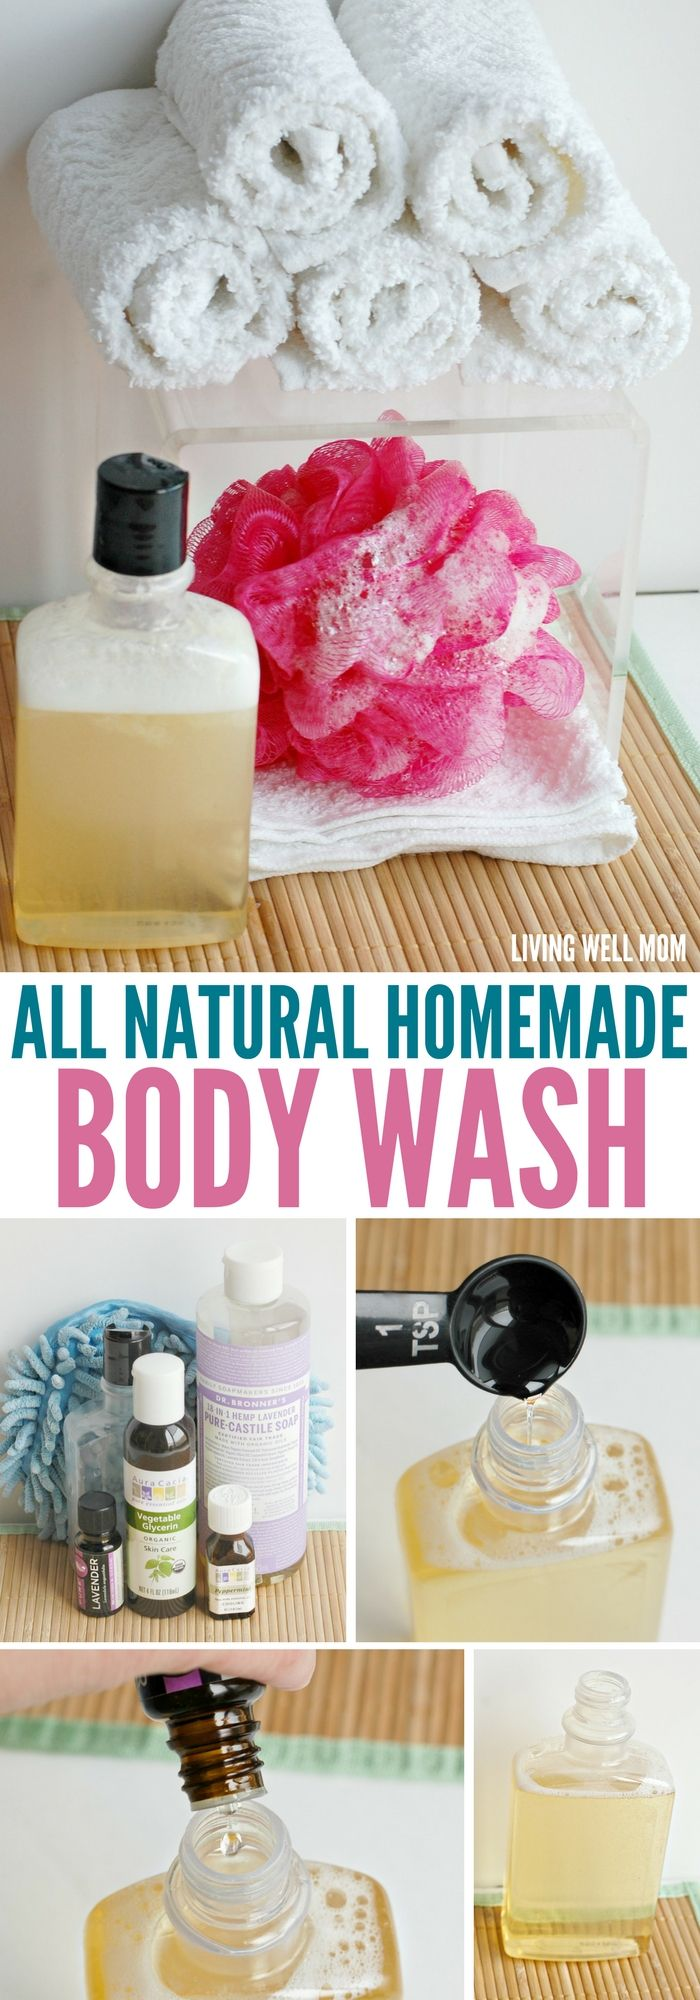 With 3 all-natural ingredients (including essential oils), you'll be amazed at how easy it is to make homemade body wash!